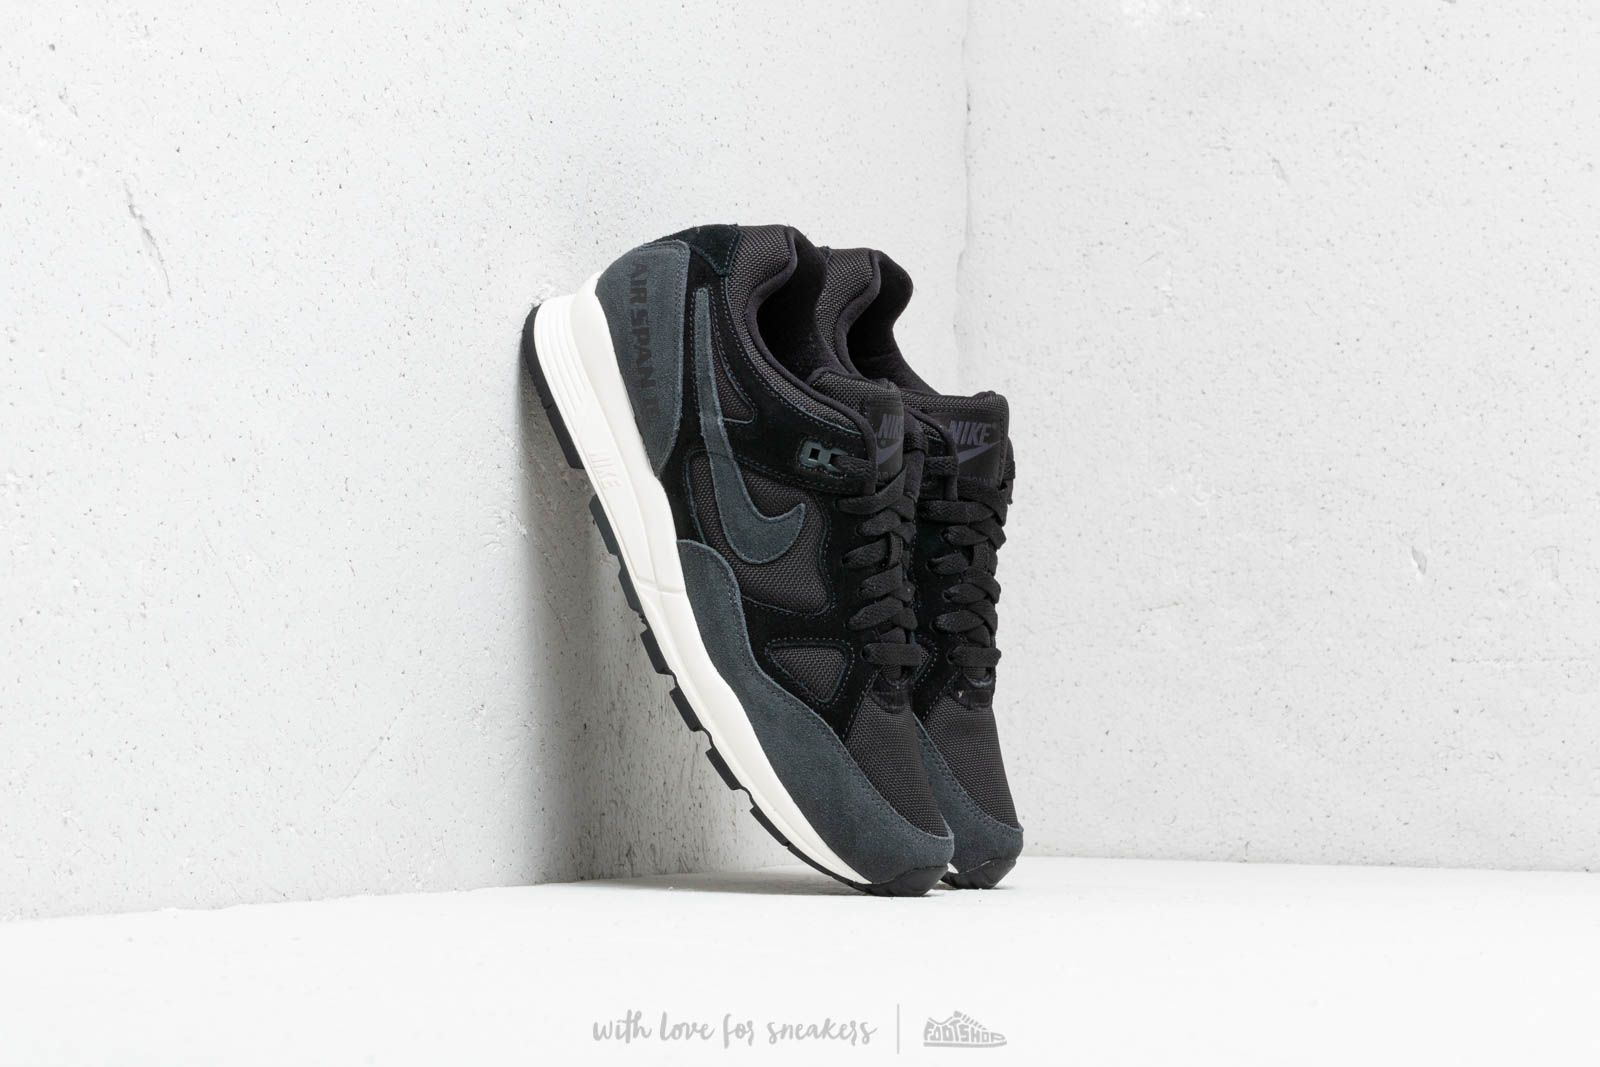 reputable site f1801 36035 Nike Air Span II Se Sp19 Black  Anthracite-Pale Ivory at a great price